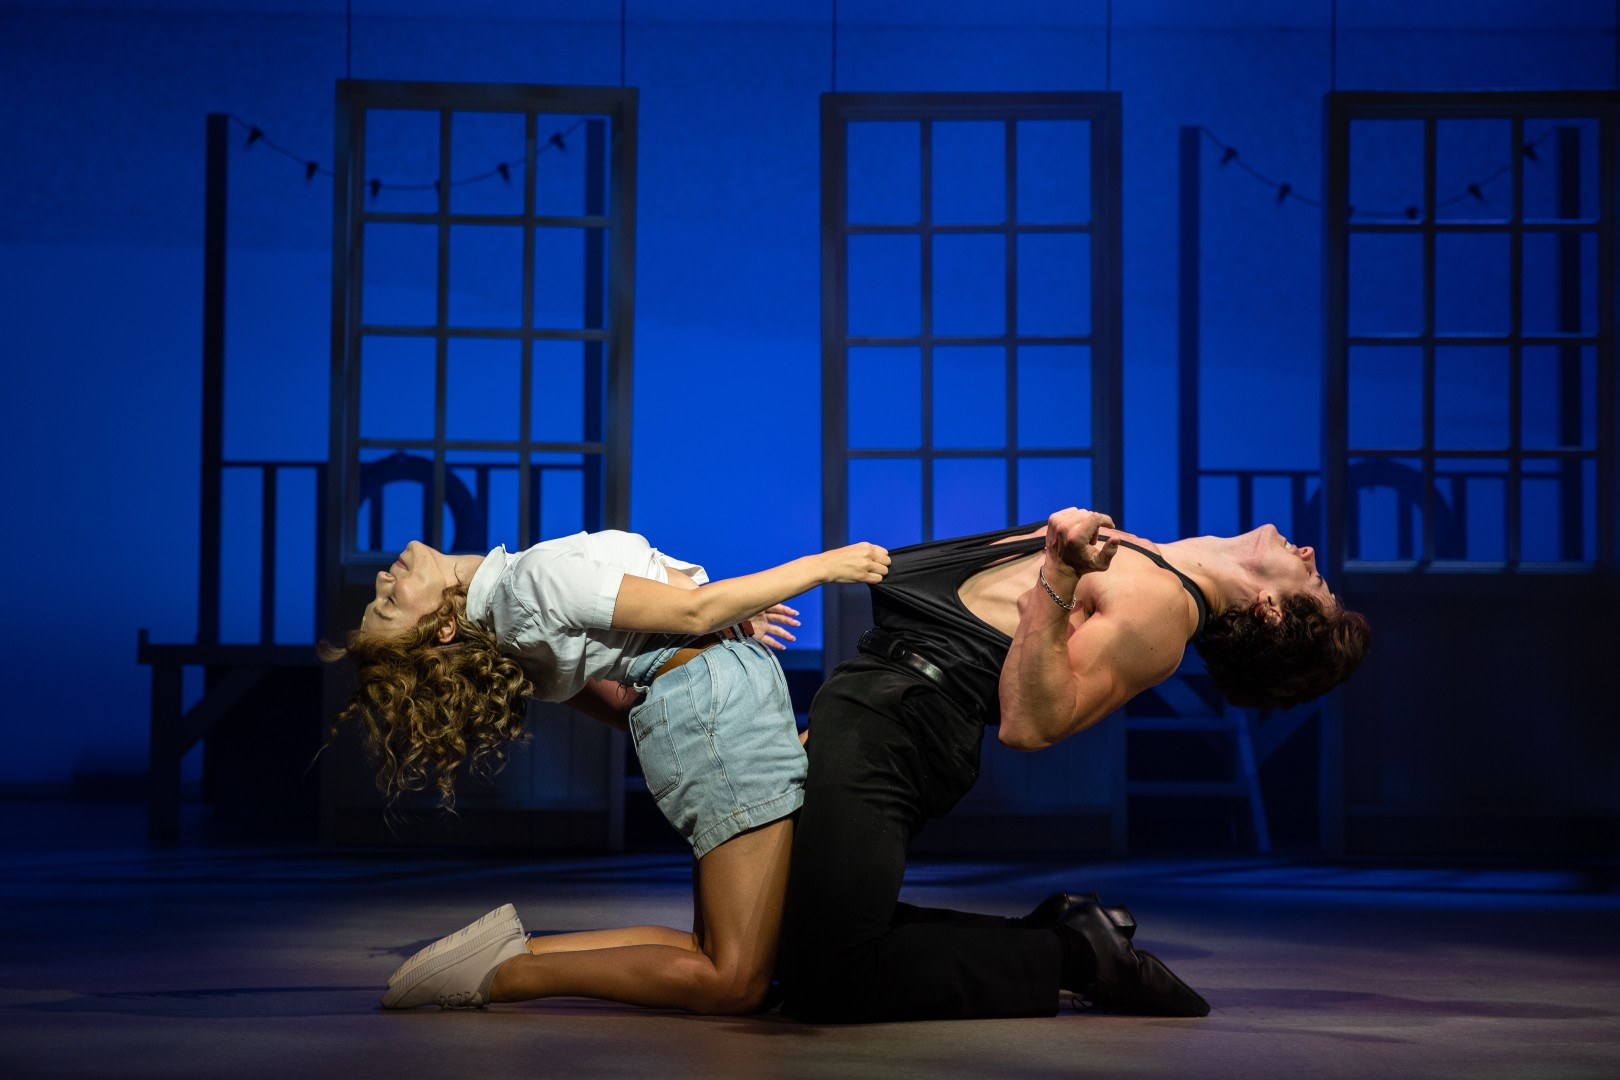 REVIEWED: Dirty Dancing at the Palace Theatre